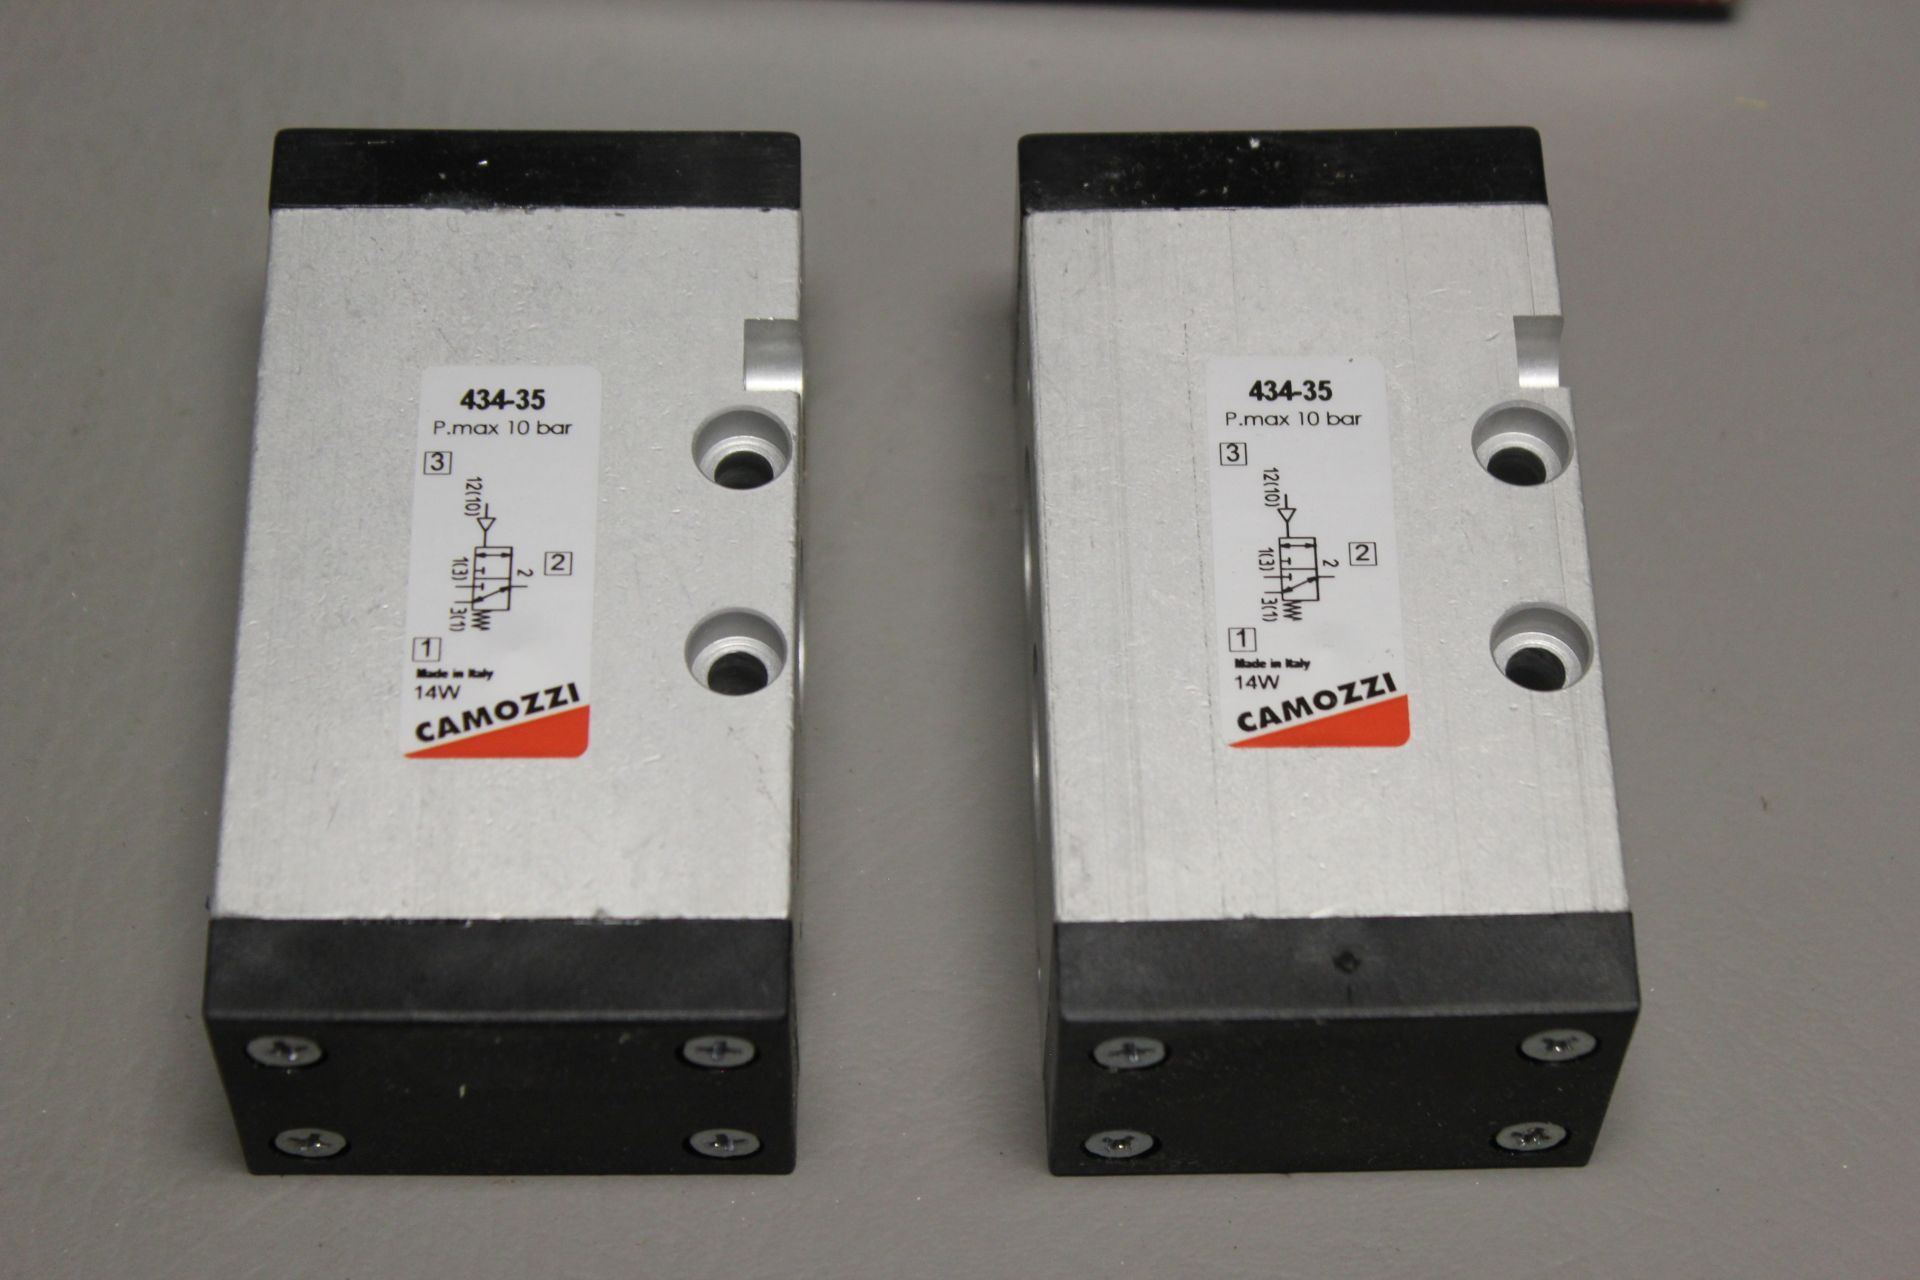 LOT OF NEW CAMOZZI SOLENOID VALVES - Image 3 of 3